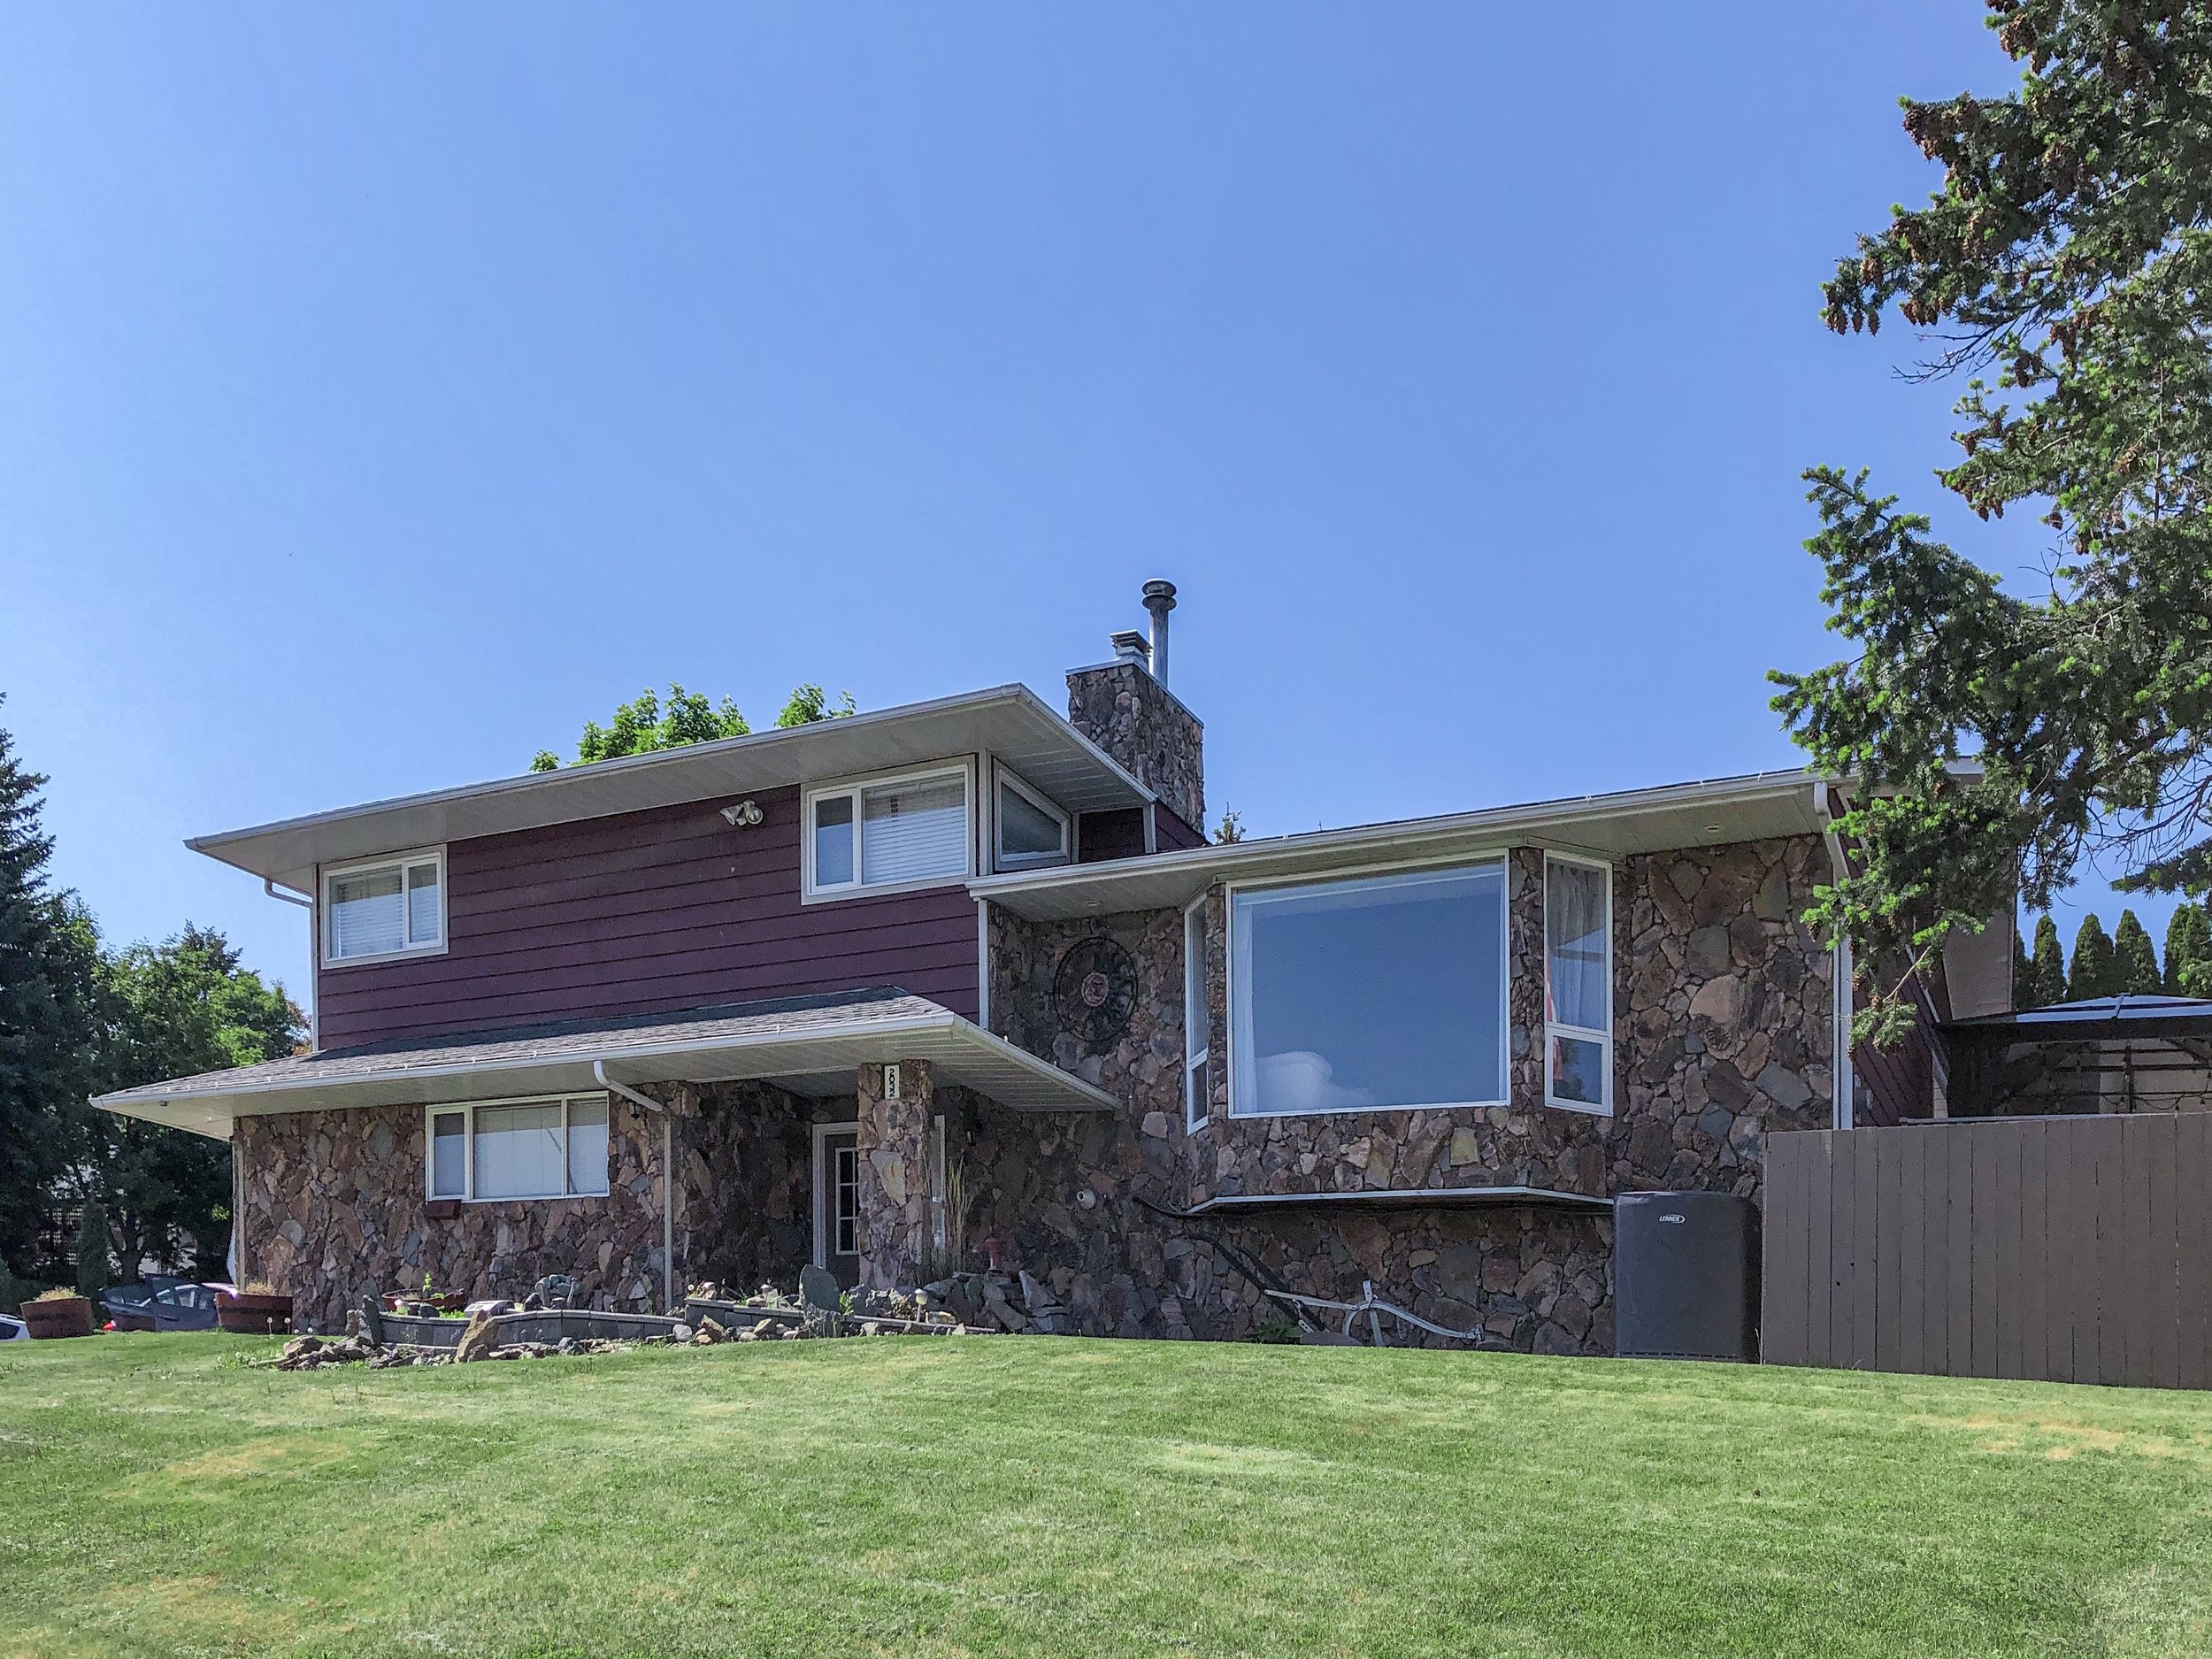 2032-sifton-avenue-kamloops-bc-aberdeen-for-sale-exterior-front-side-large-corner-yard.jpg